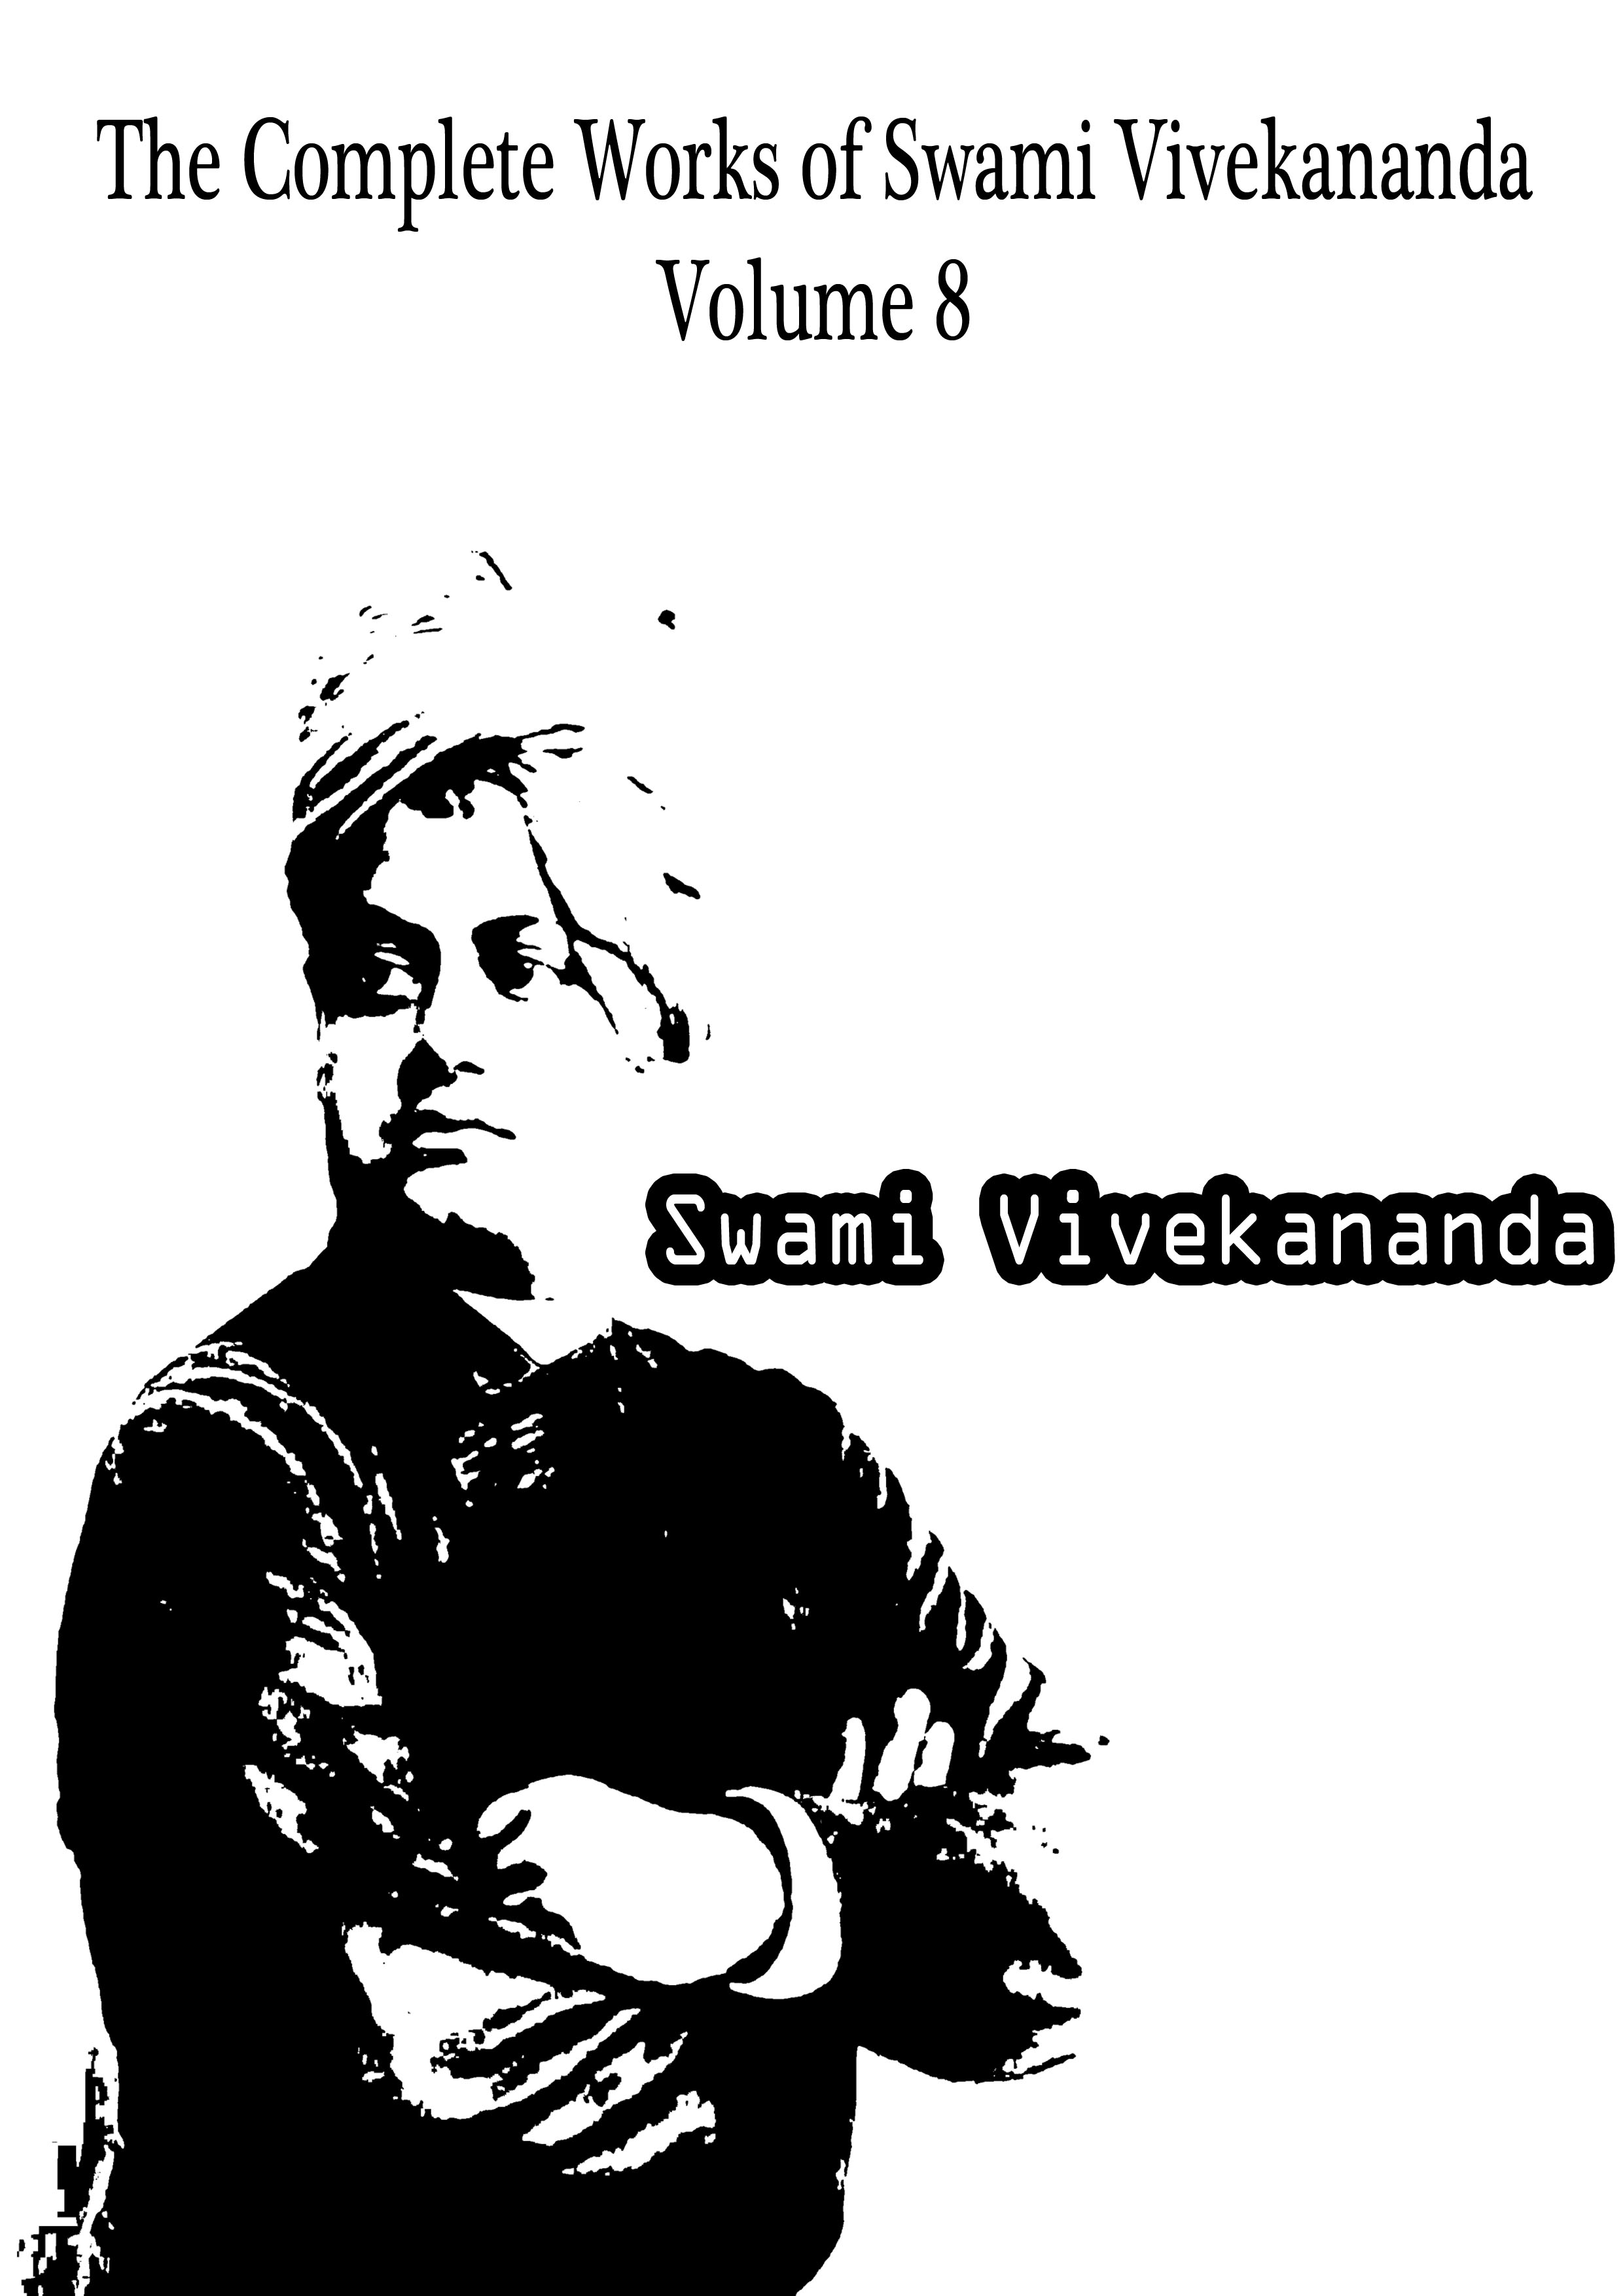 The Complete Works of Swami Vivekananda Volume 8